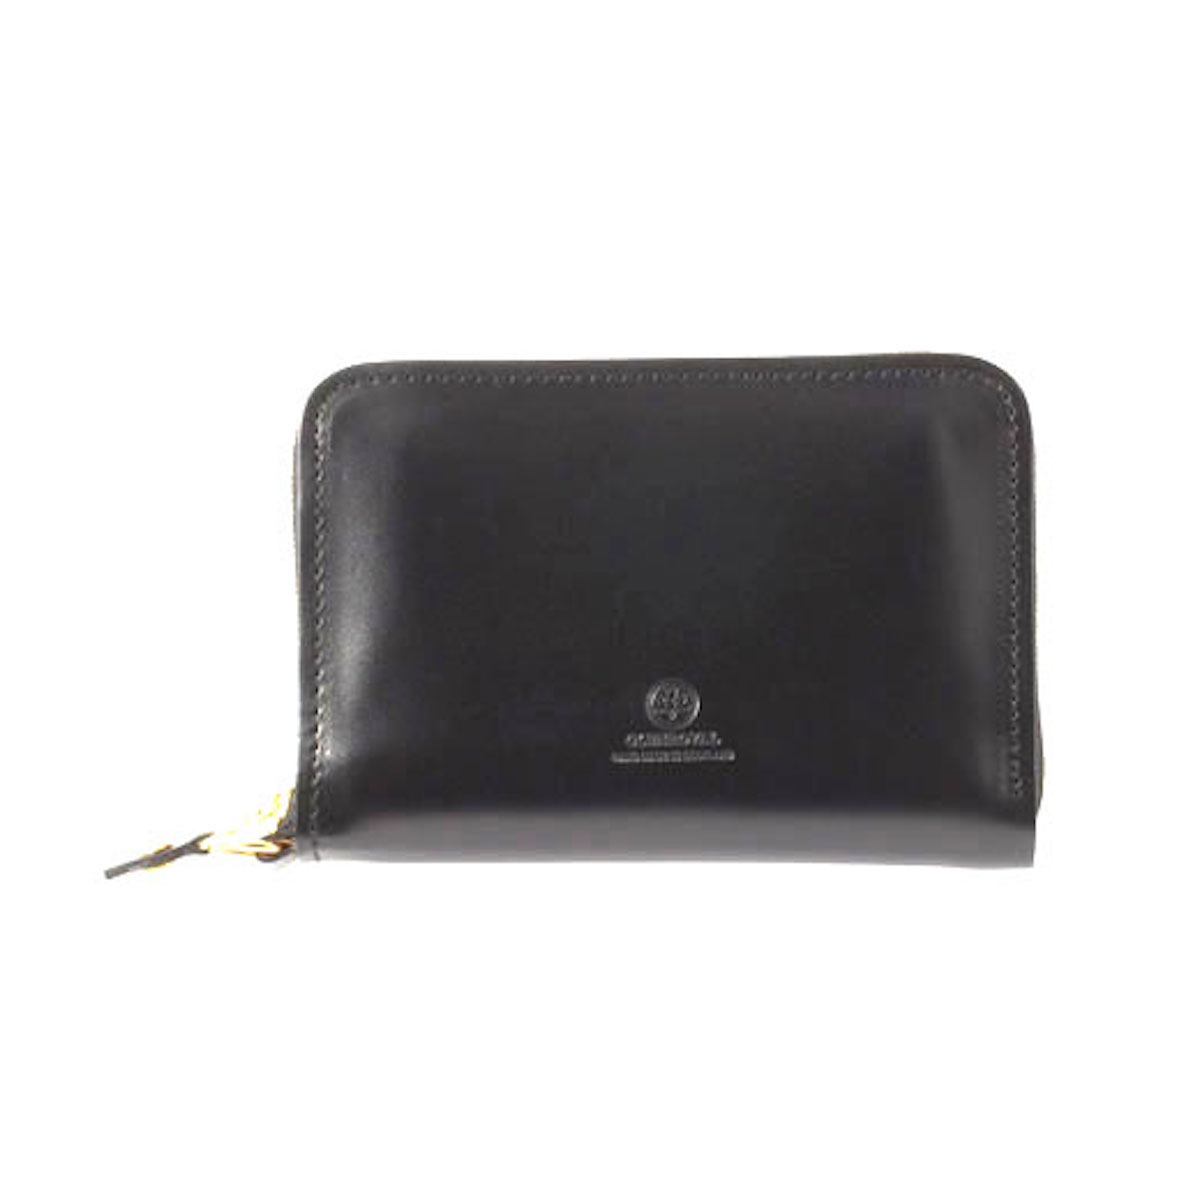 GLENROYAL / WALLET WITH DIVIDERS -NEW BLACK